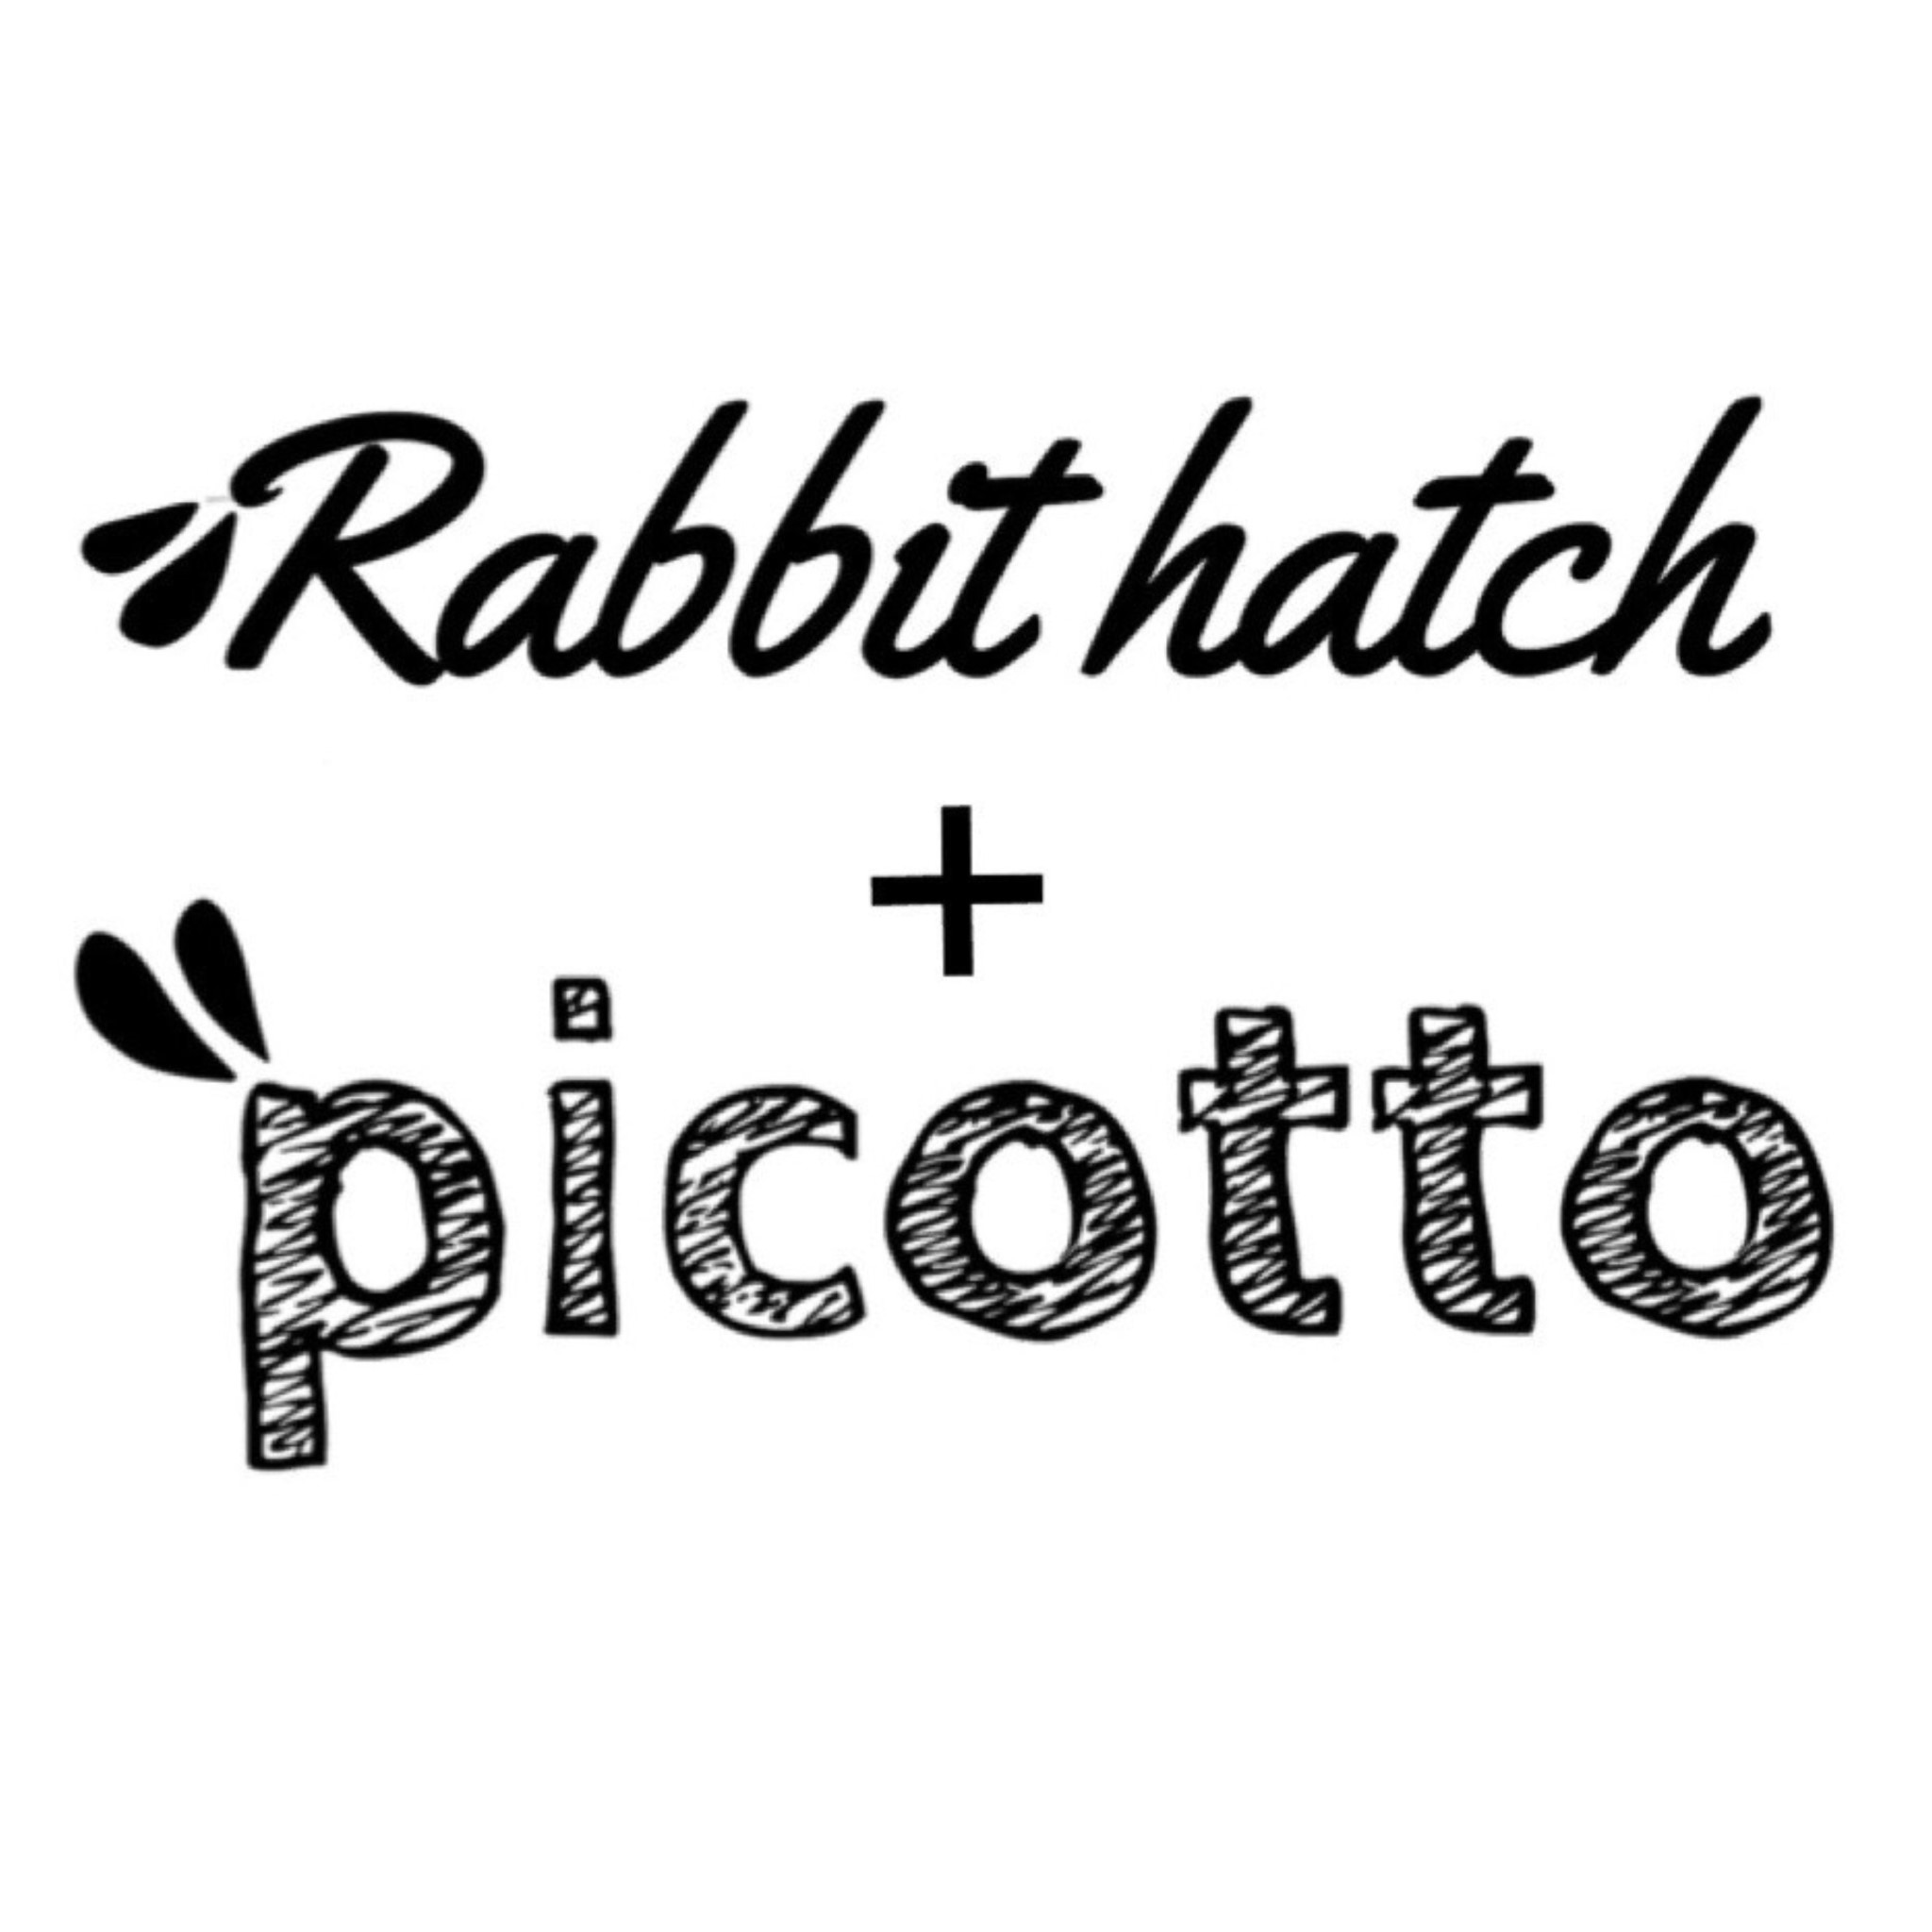 Rabbit Hatch +picotto